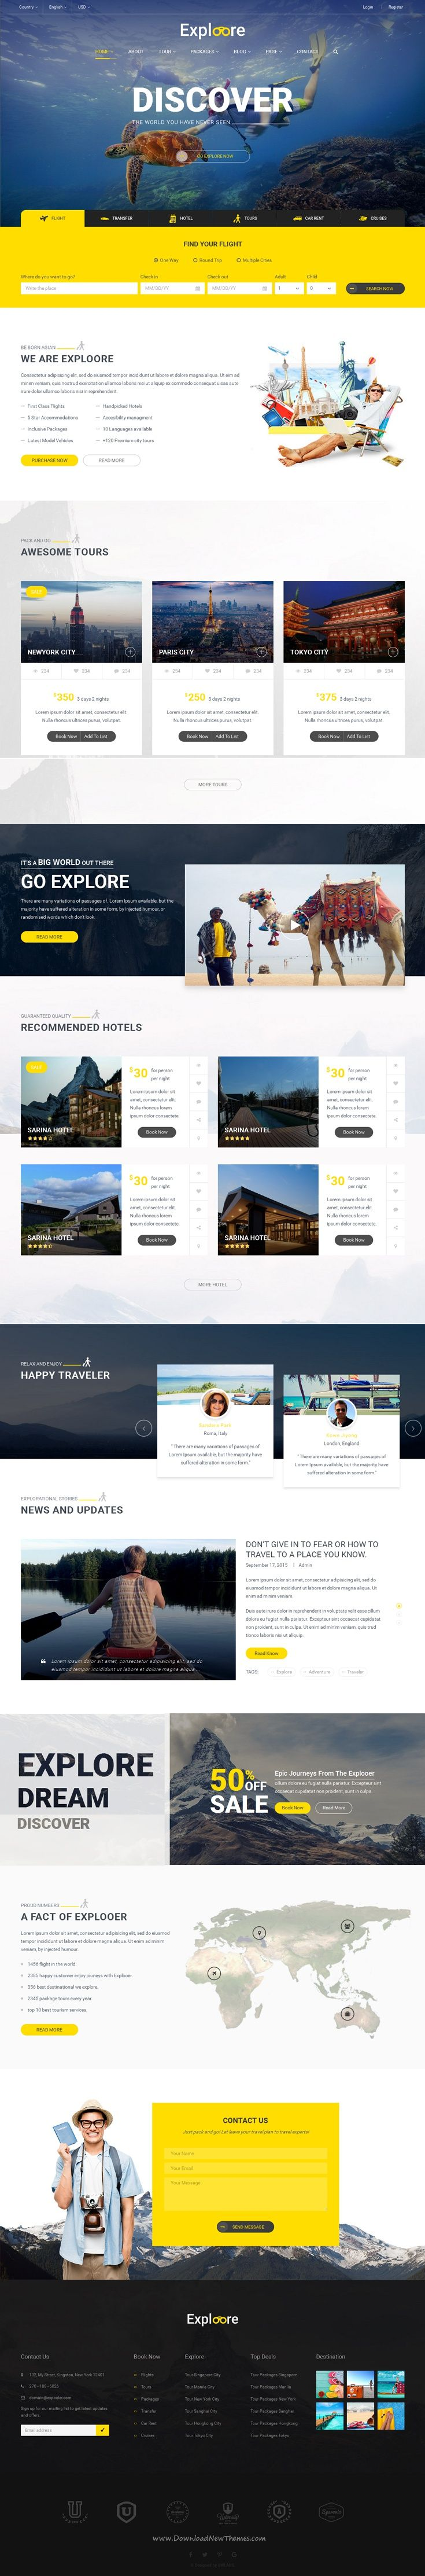 Exploore is a modern & fully responsive bootstrap template which has been designed for #travel #website, travel agency, travel blog, #tour operators, hotel, etc.